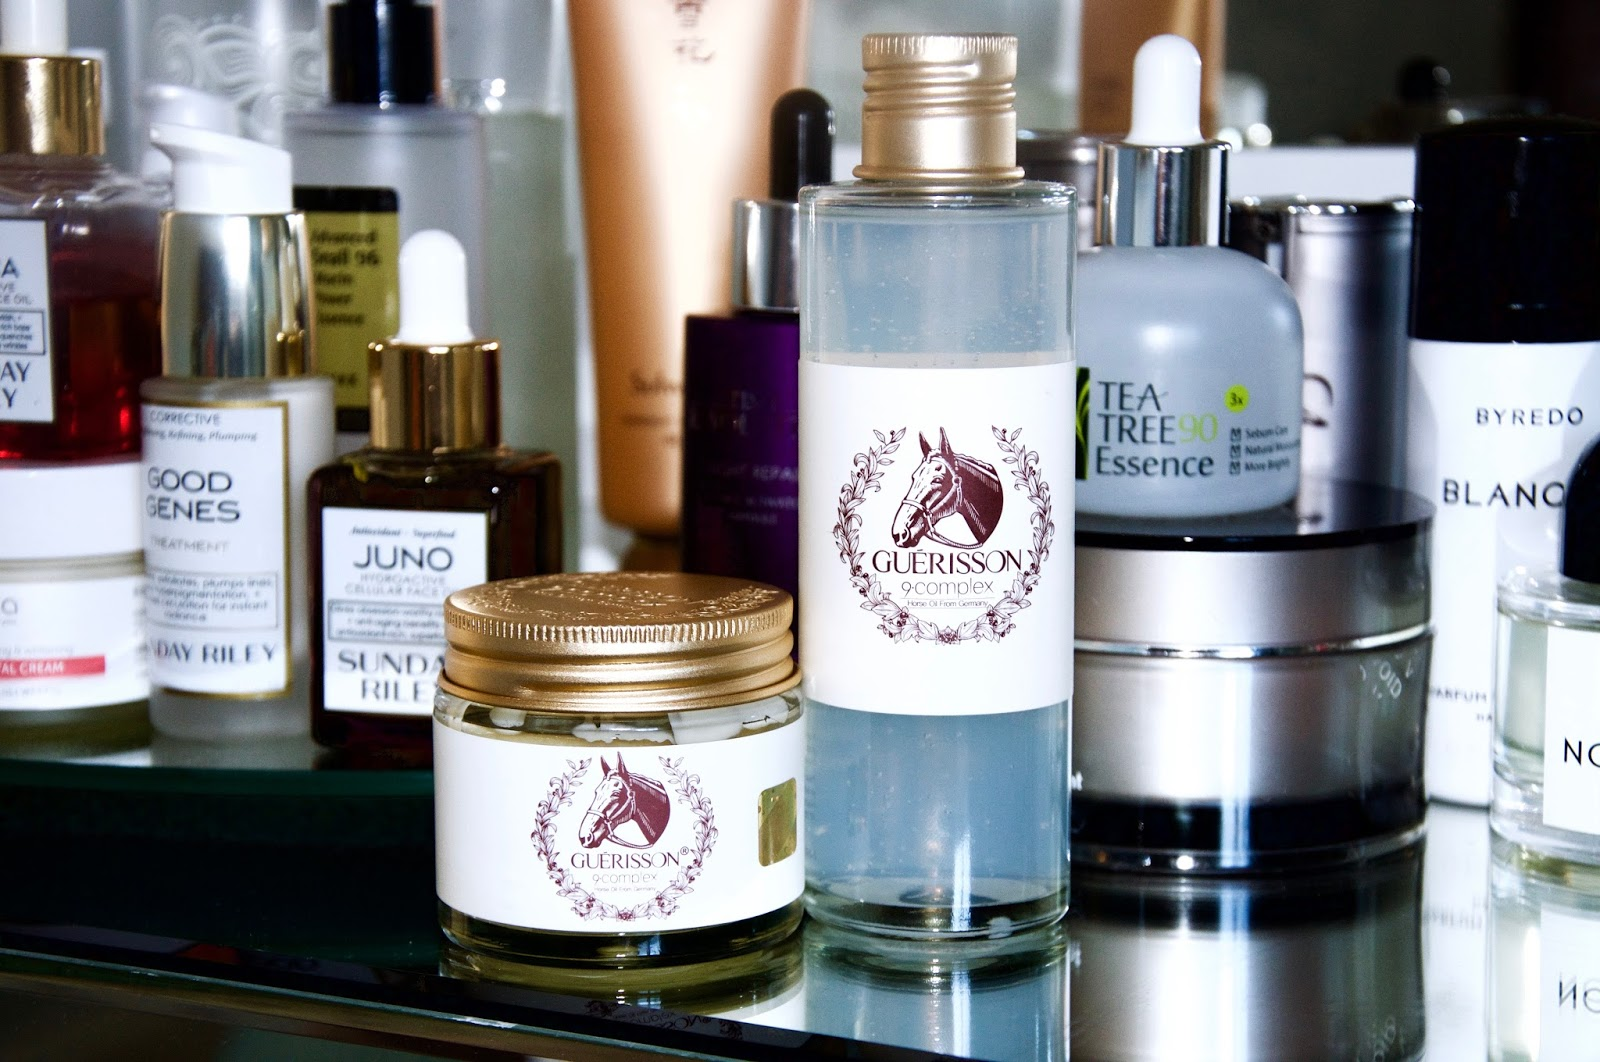 HORSE OIL, AN UNSUNG HERO FOR DRY SKIN: THE GUERISSON 9•COMPLEX HORSE OIL CREAM AND ESSENCE REVIEW